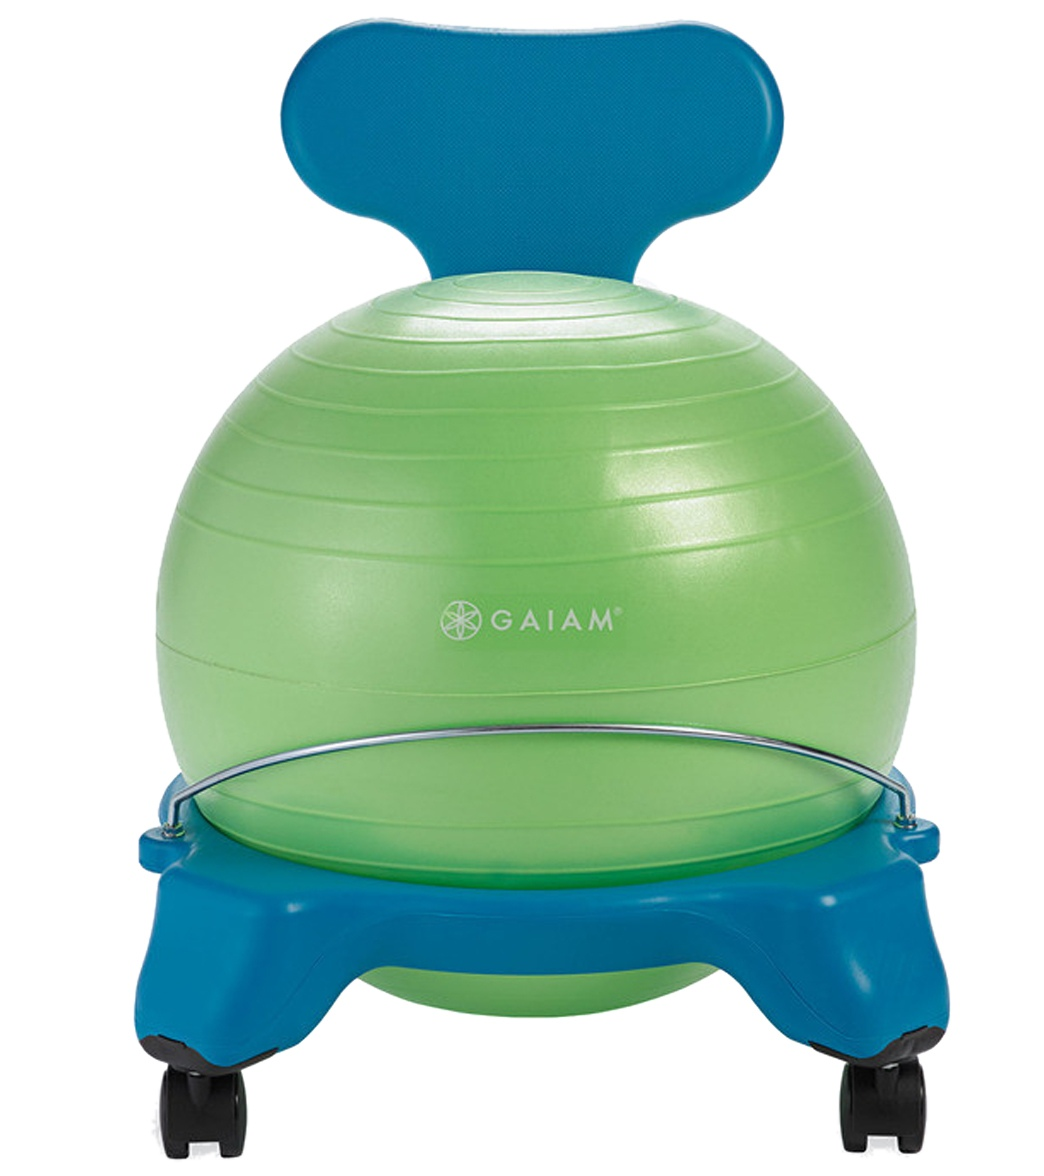 kids balance ball chair posture ikea gaiam kid 39s yoga at yogaoutlet